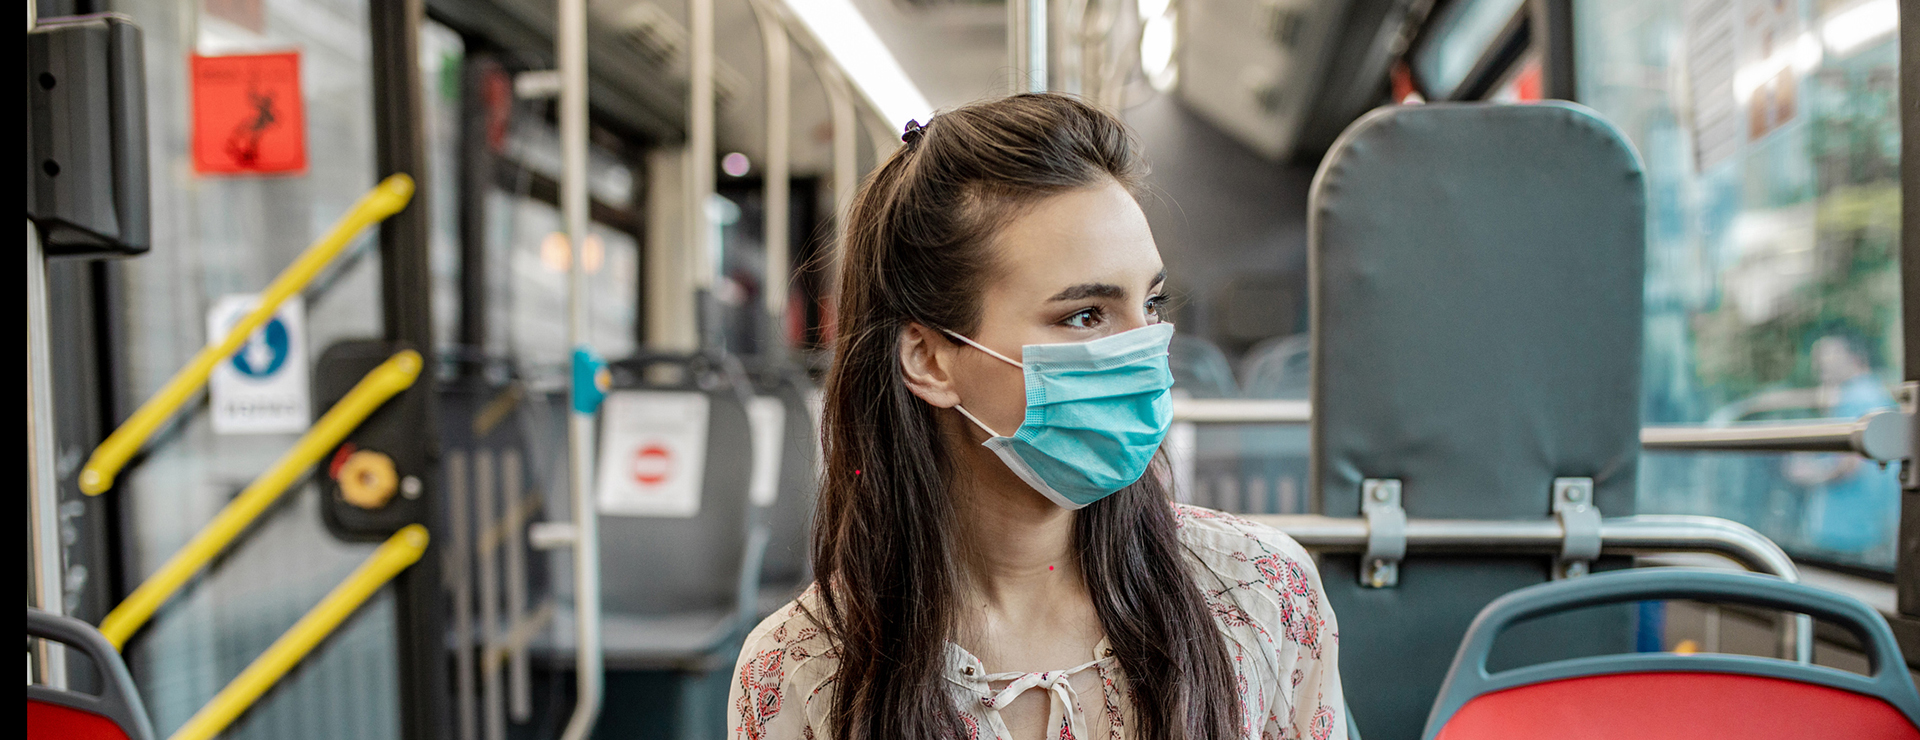 Woman in a mask on the bus